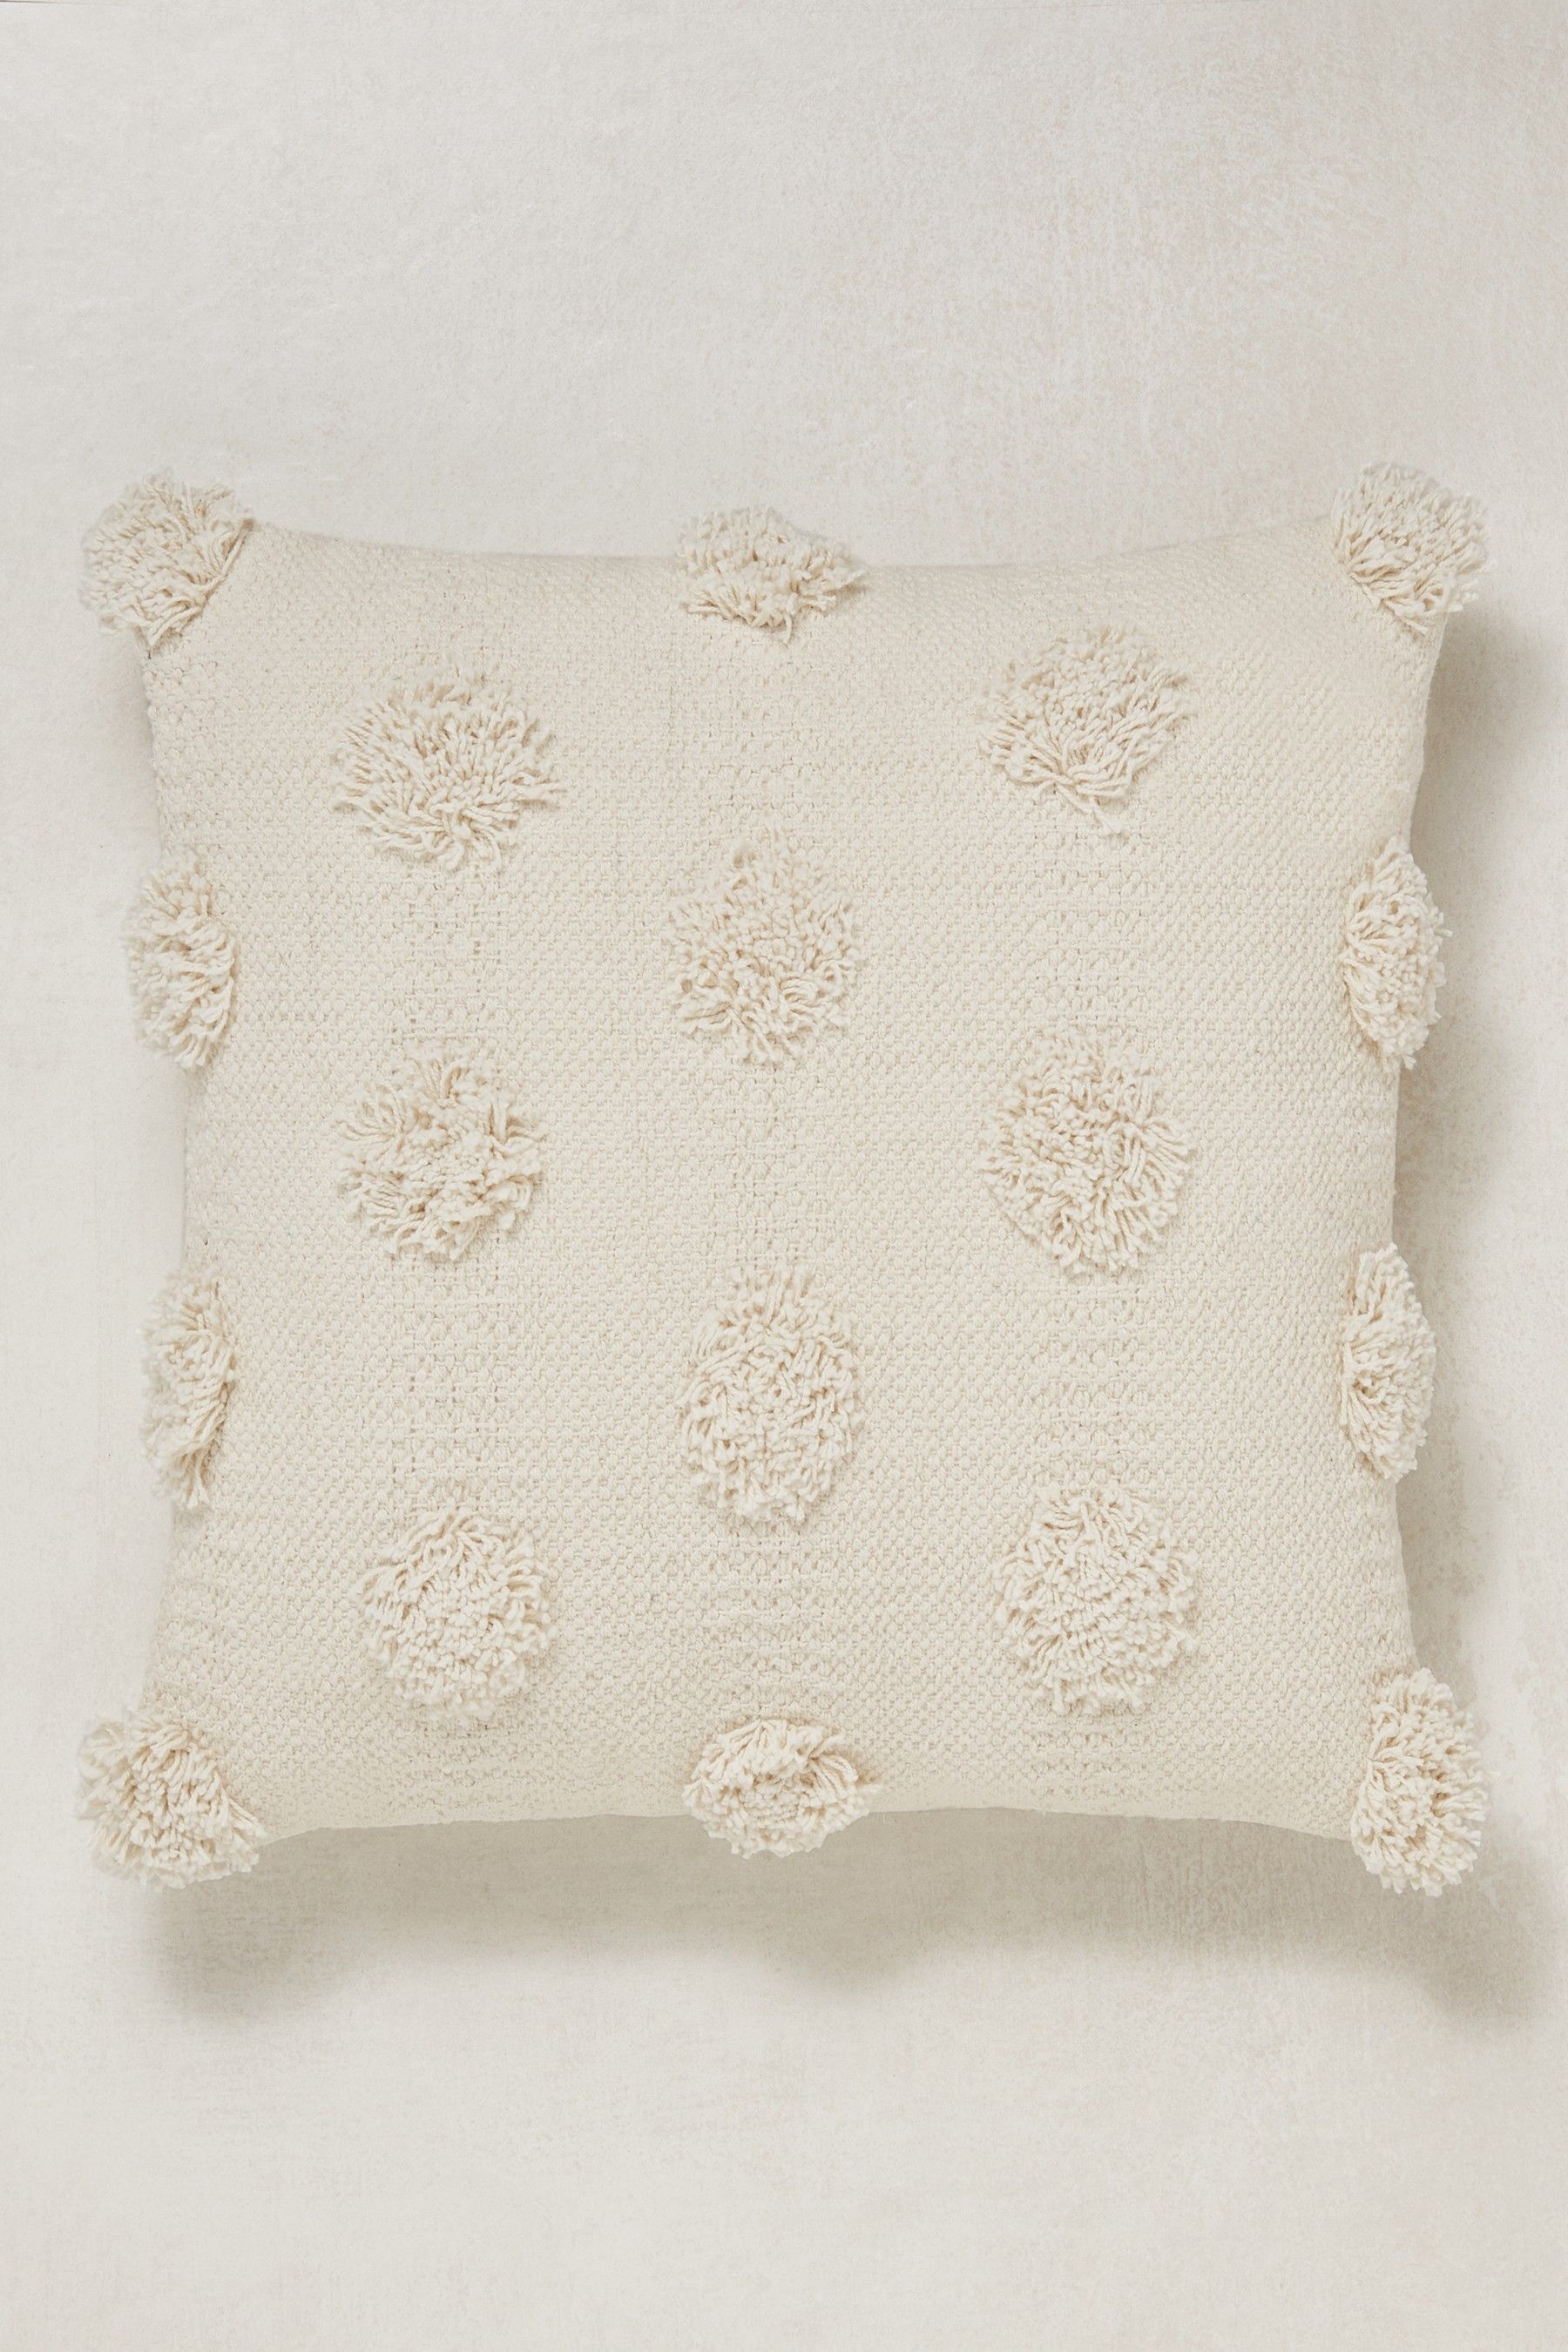 Next Textured Pom Pom Cushion Natural Projects To Try In 2019